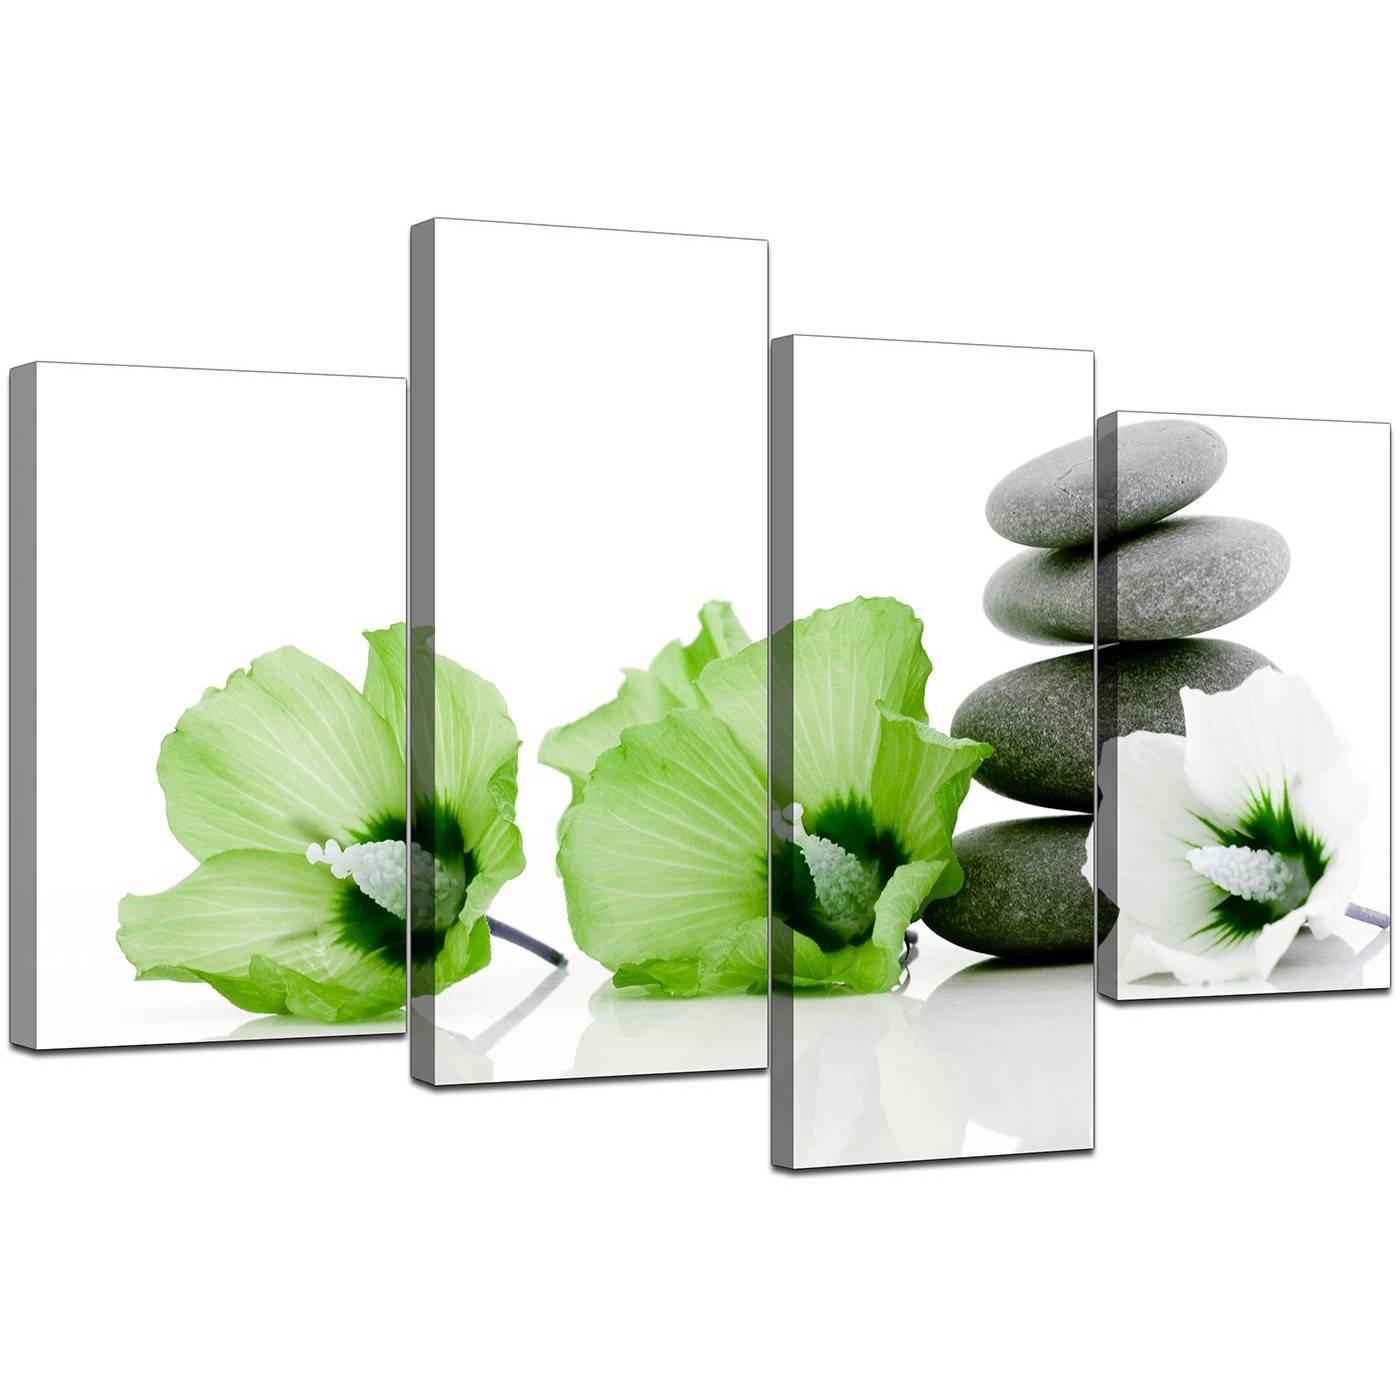 Canvas Prints Of Flowers In Green For Your Living Room Regarding Most Recently Released Green Canvas Wall Art (View 10 of 20)